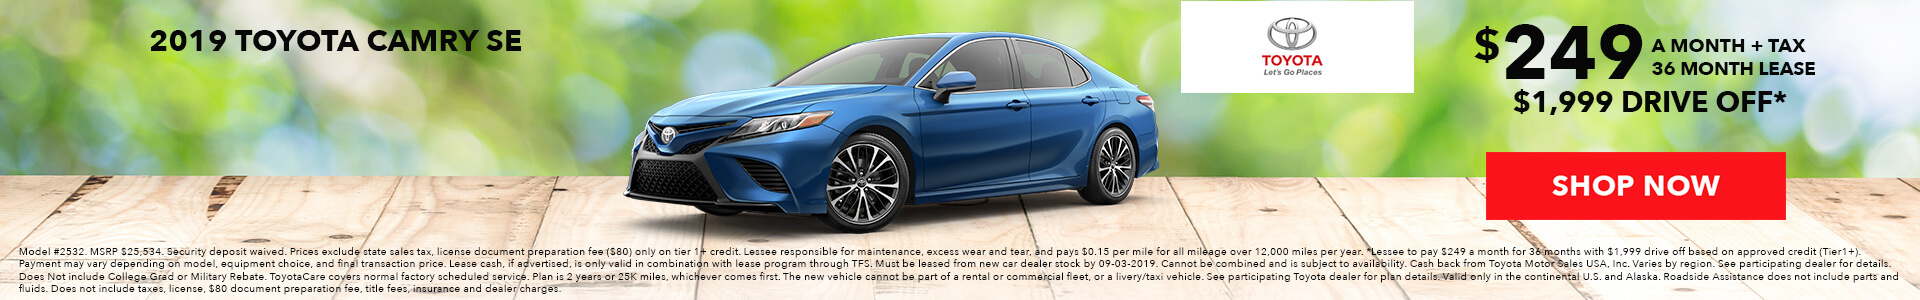 Toyota Camry $249 Lease